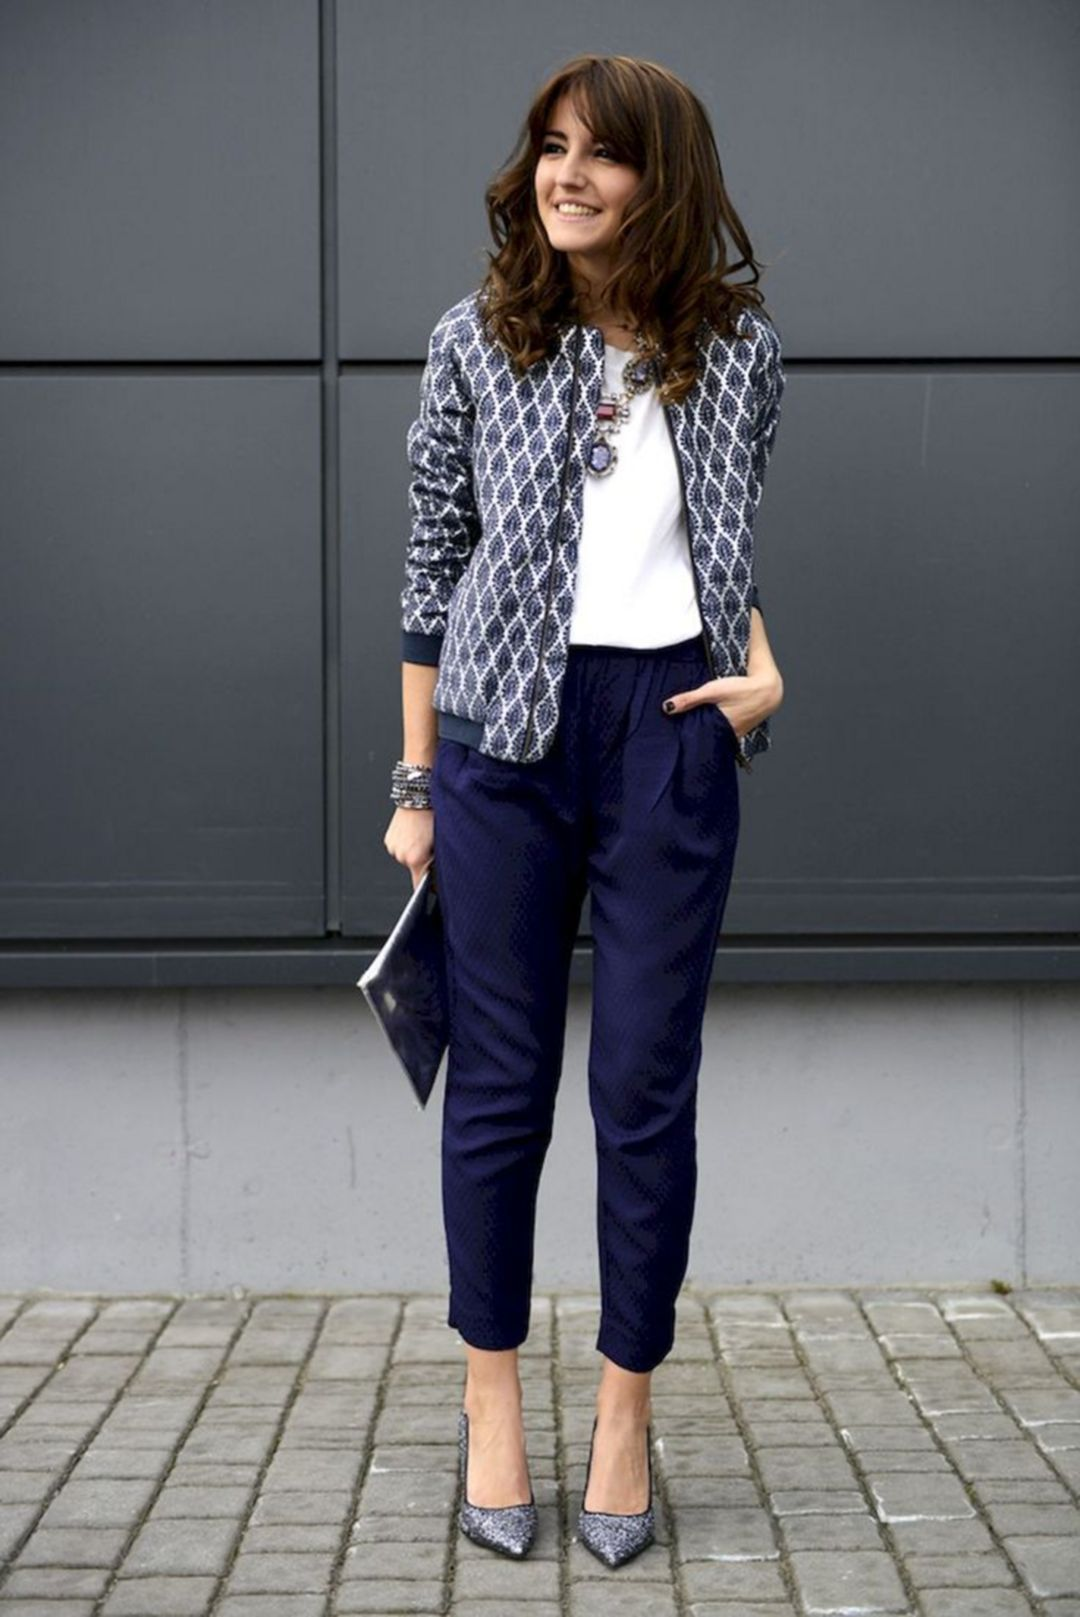 11 Top Casual Fashion Ideas To Stay Beautiful In The Office Fashions Nowadays Casual Work Outfits Clothes For Women Summer Work Outfits [ 1617 x 1080 Pixel ]